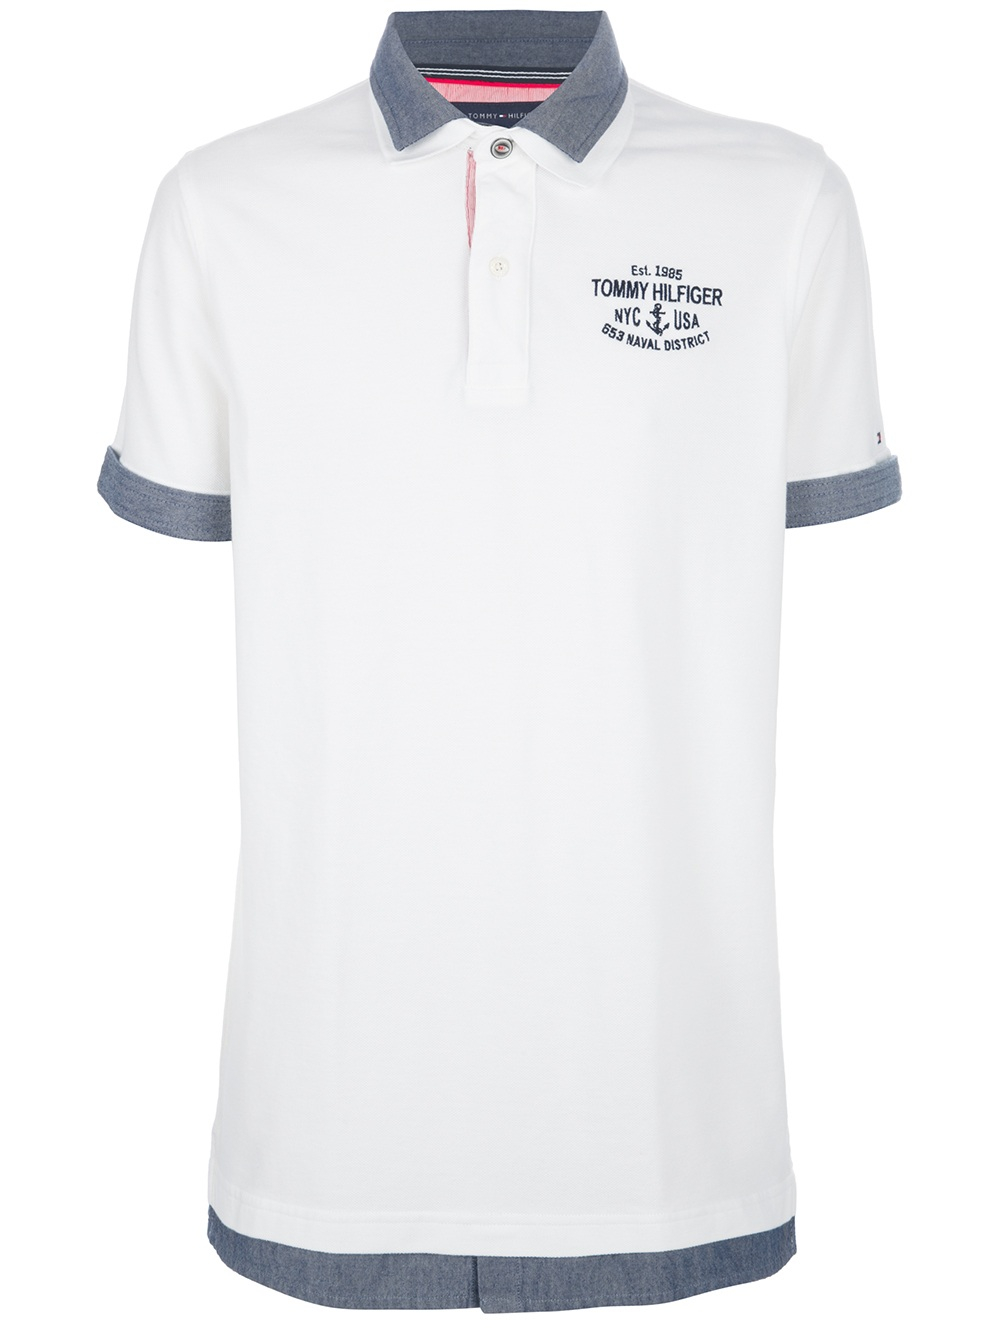 fdcc98e0 Tommy Hilfiger Polo Shirt in White for Men - Lyst